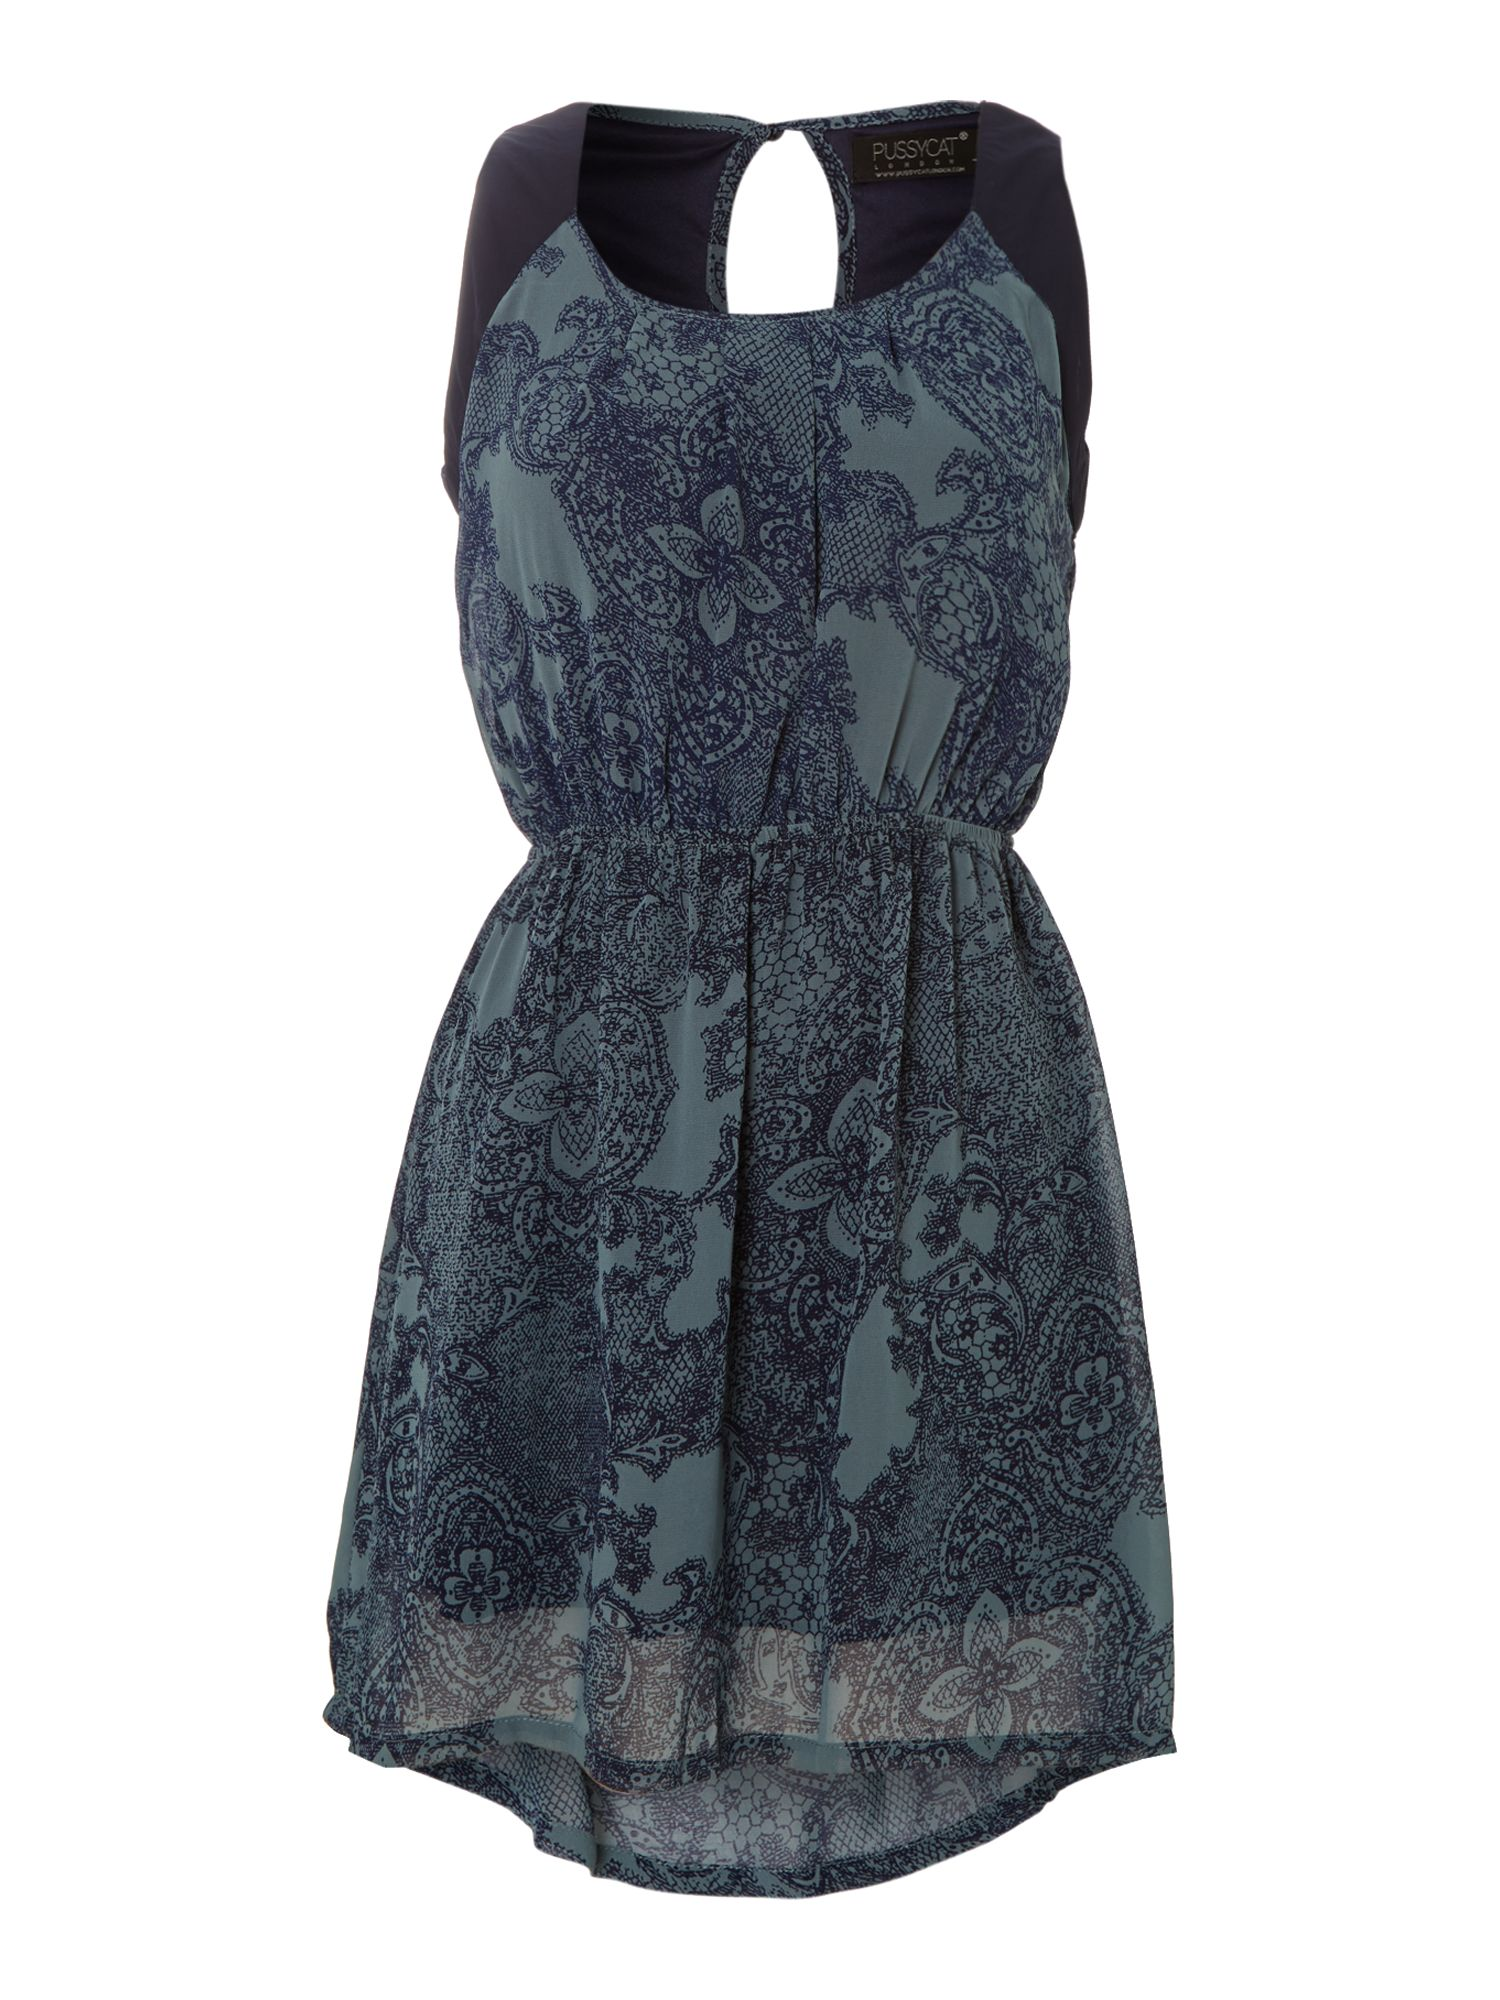 Lace print chiffon dress